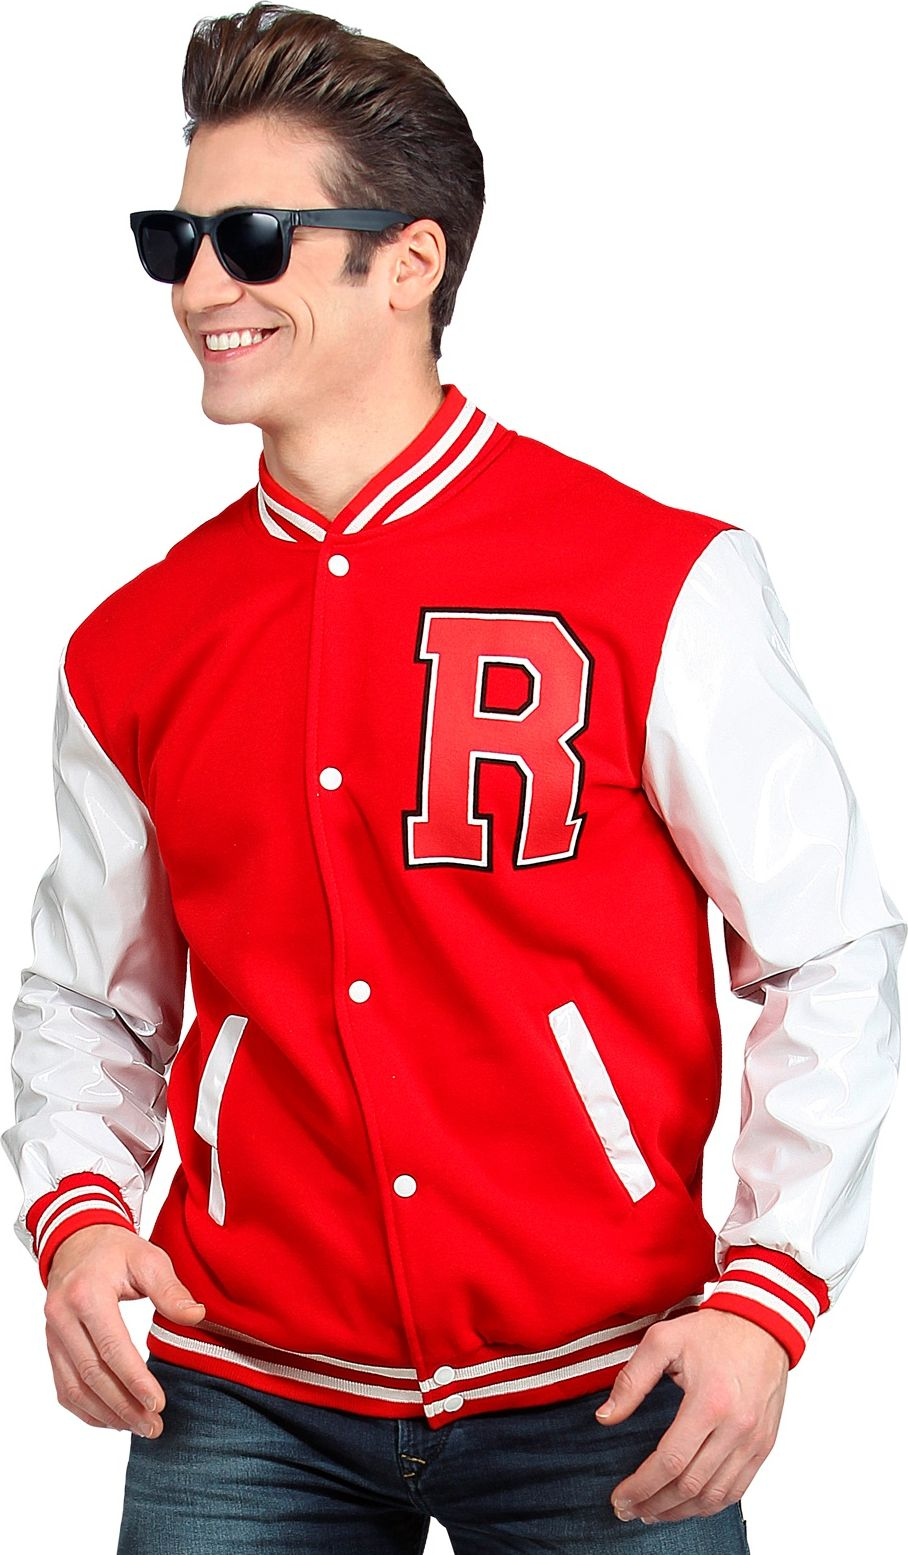 Grease baseball jacket